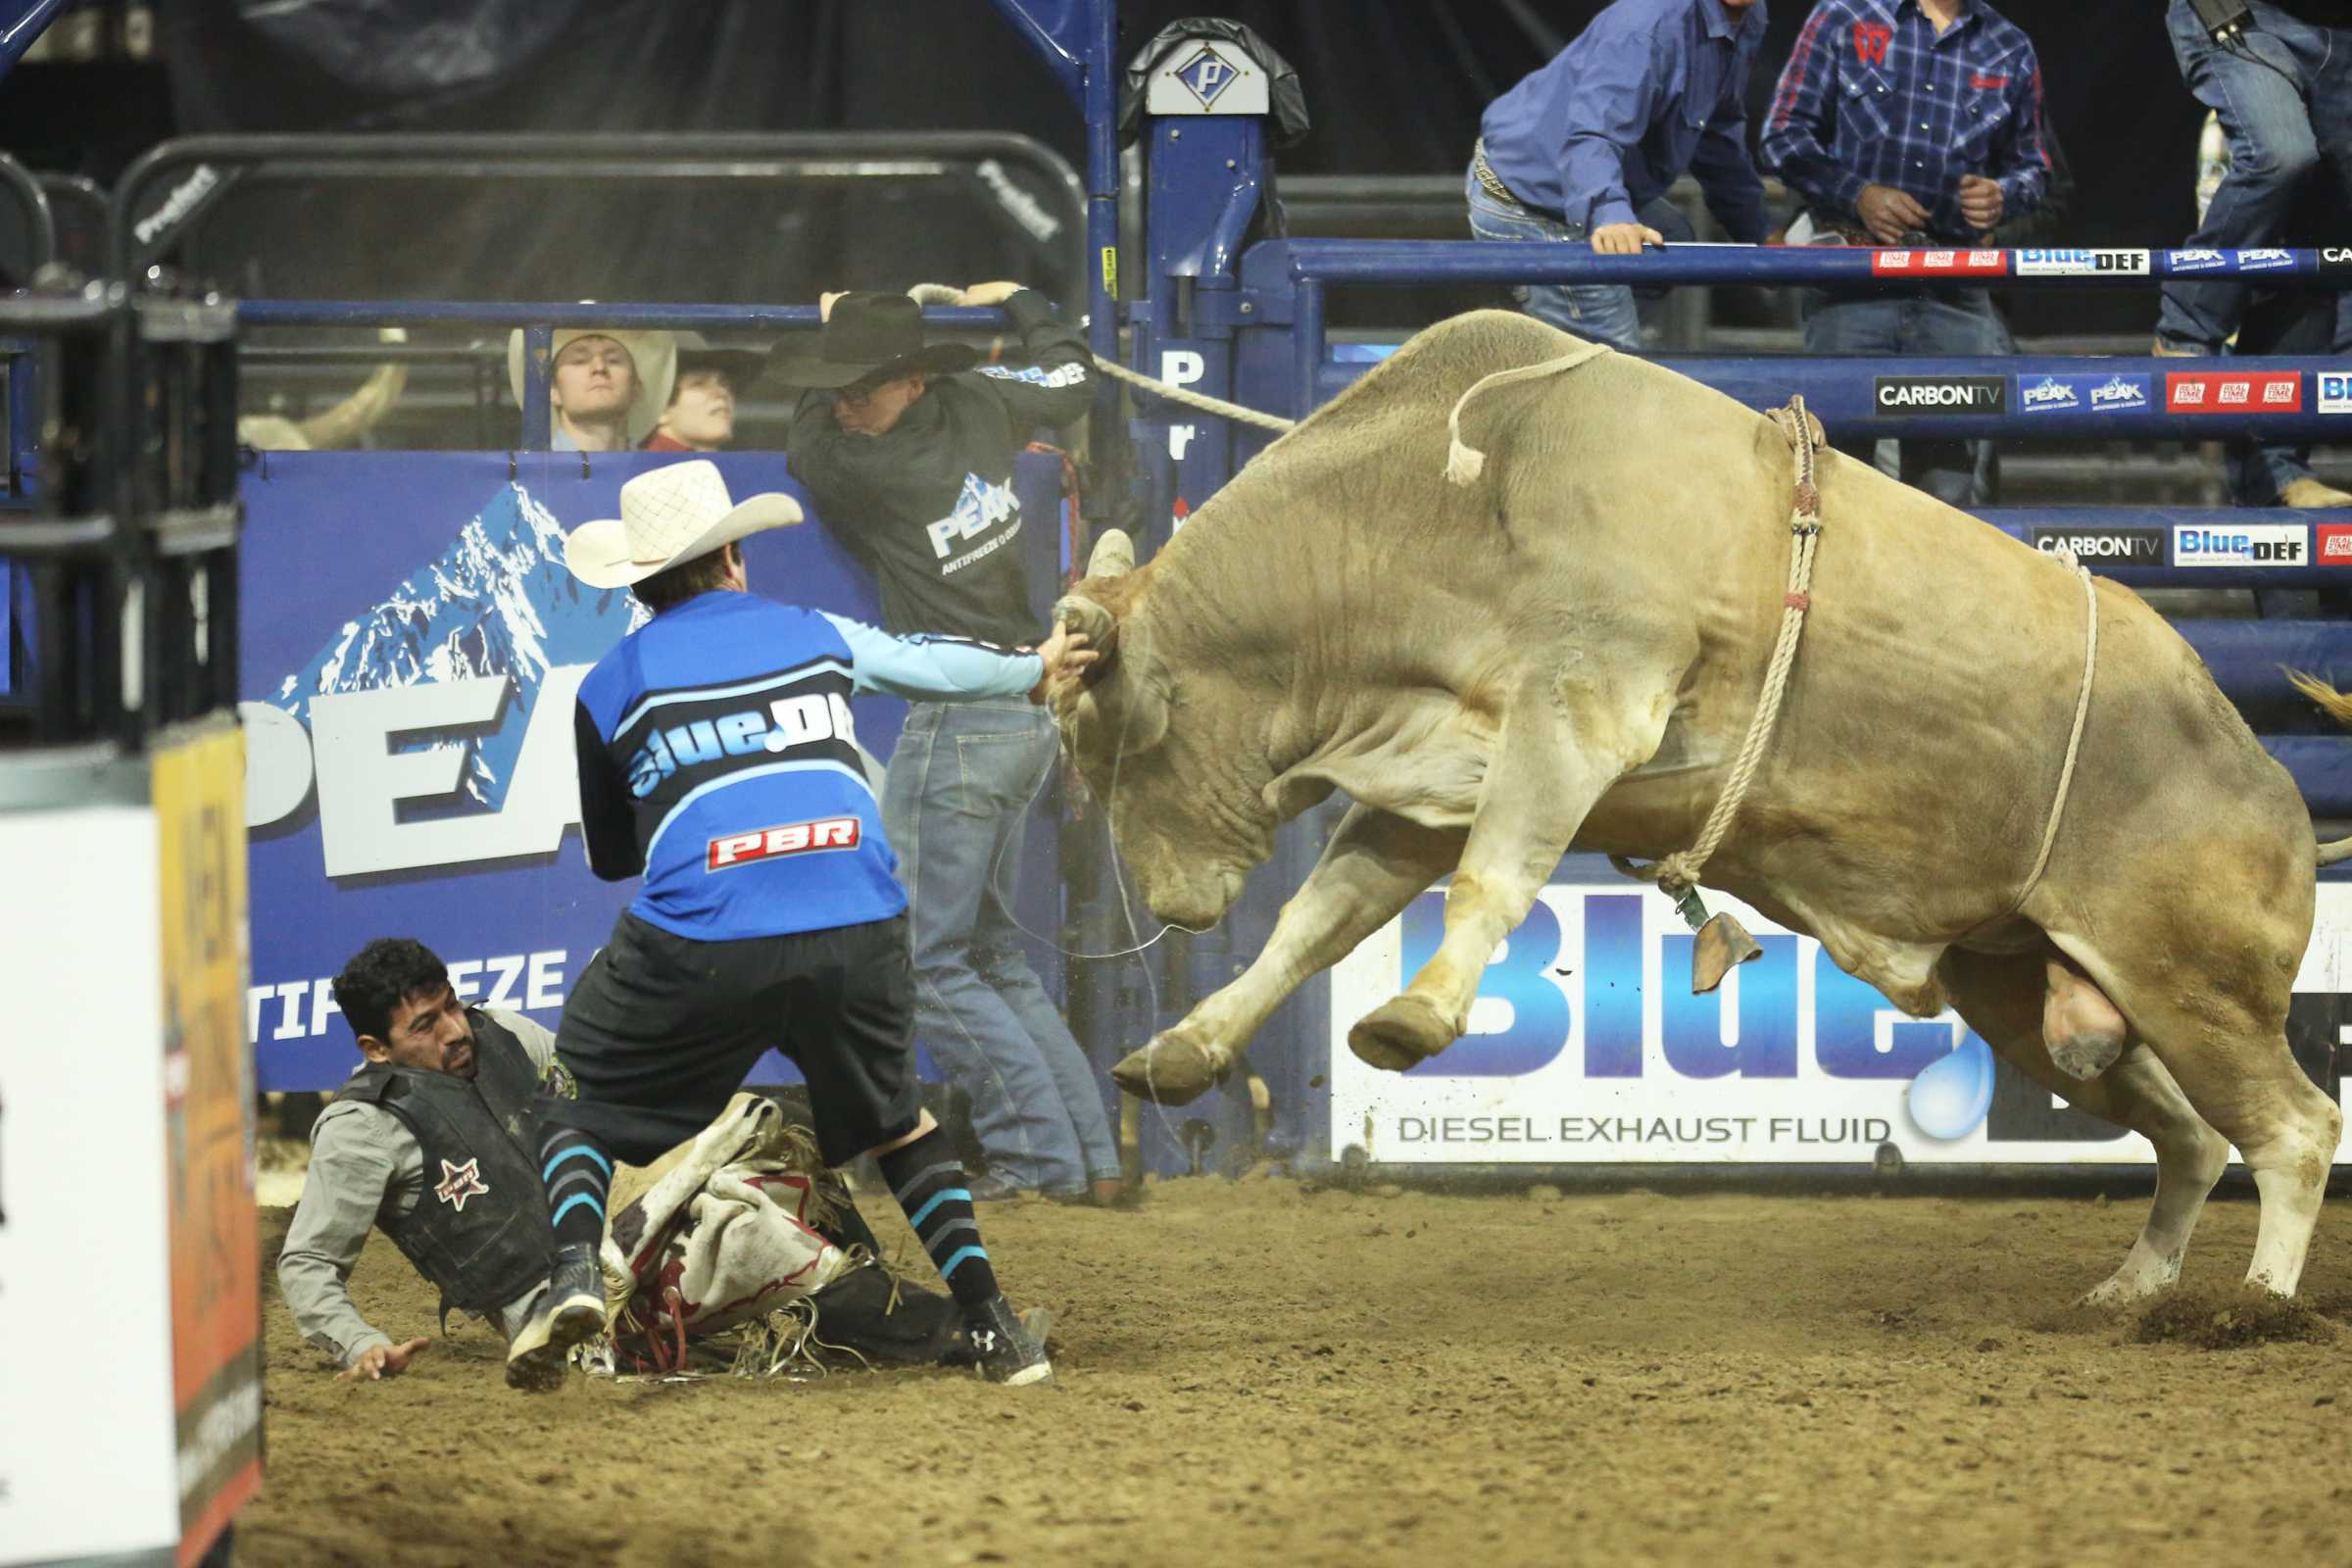 A bull rider at the PBR event narrowly dodges injury as one of the brave bull fighters gets in between to distract the bull and give the rider a chance to escape.